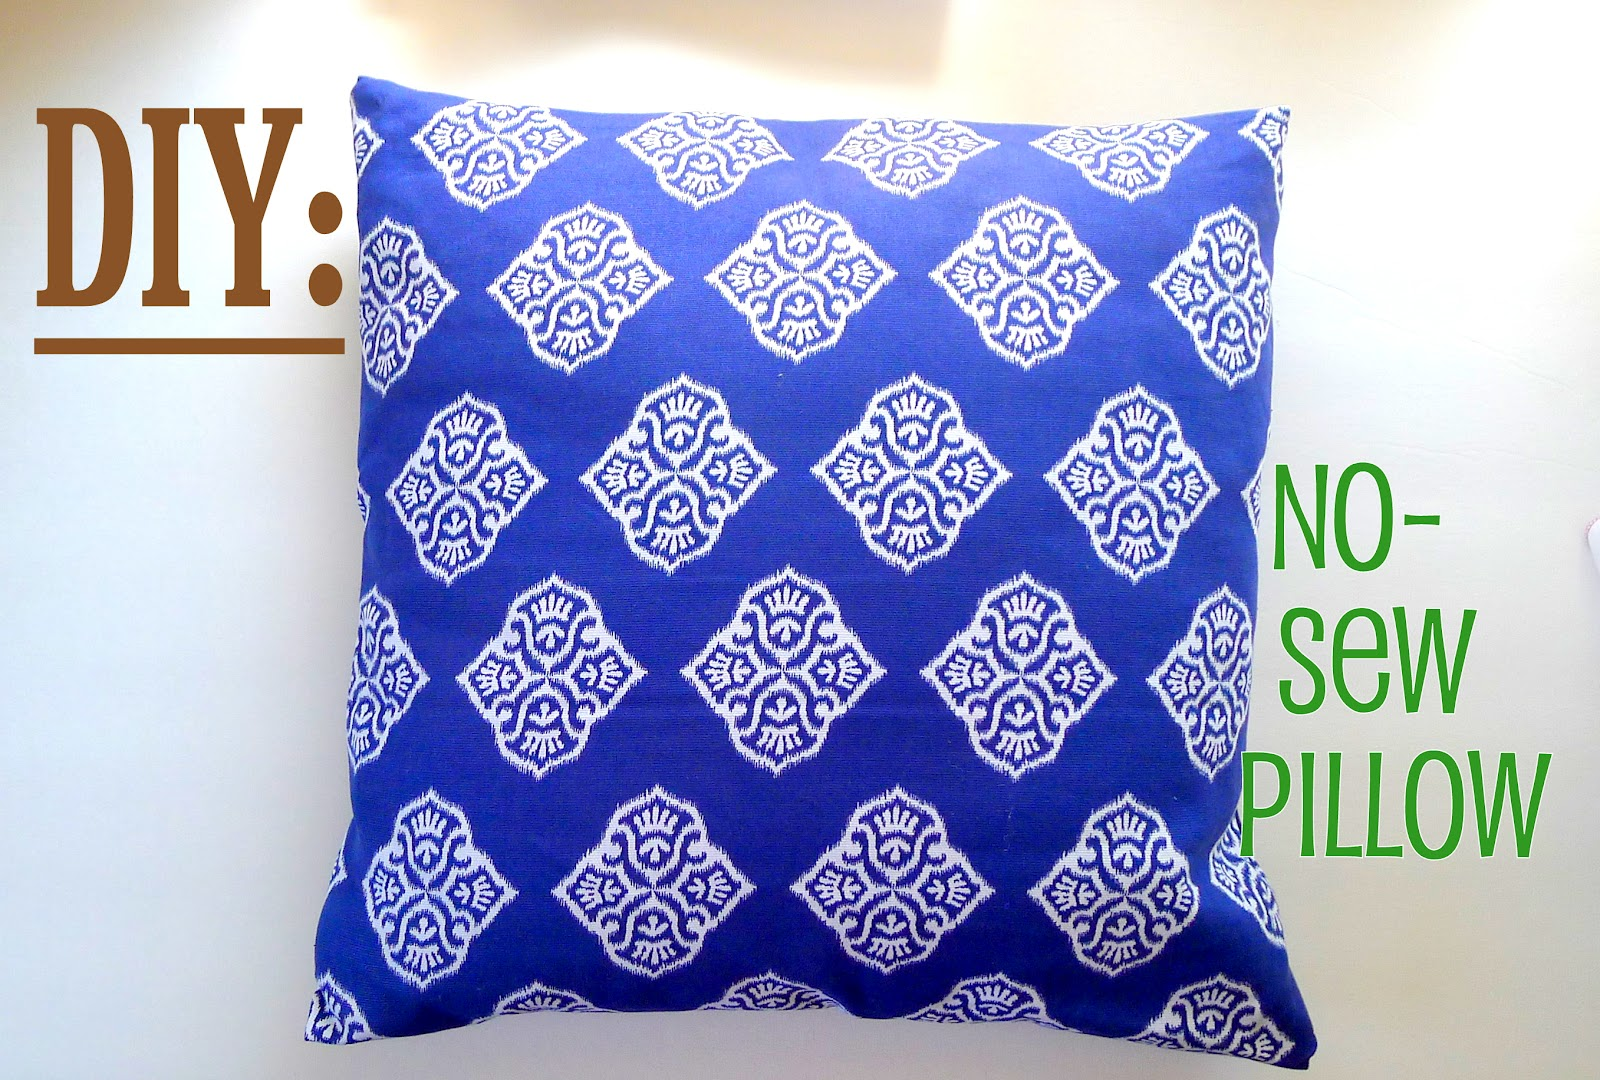 Diy No Sew Pillow: DIY  No  Sew Pillow,